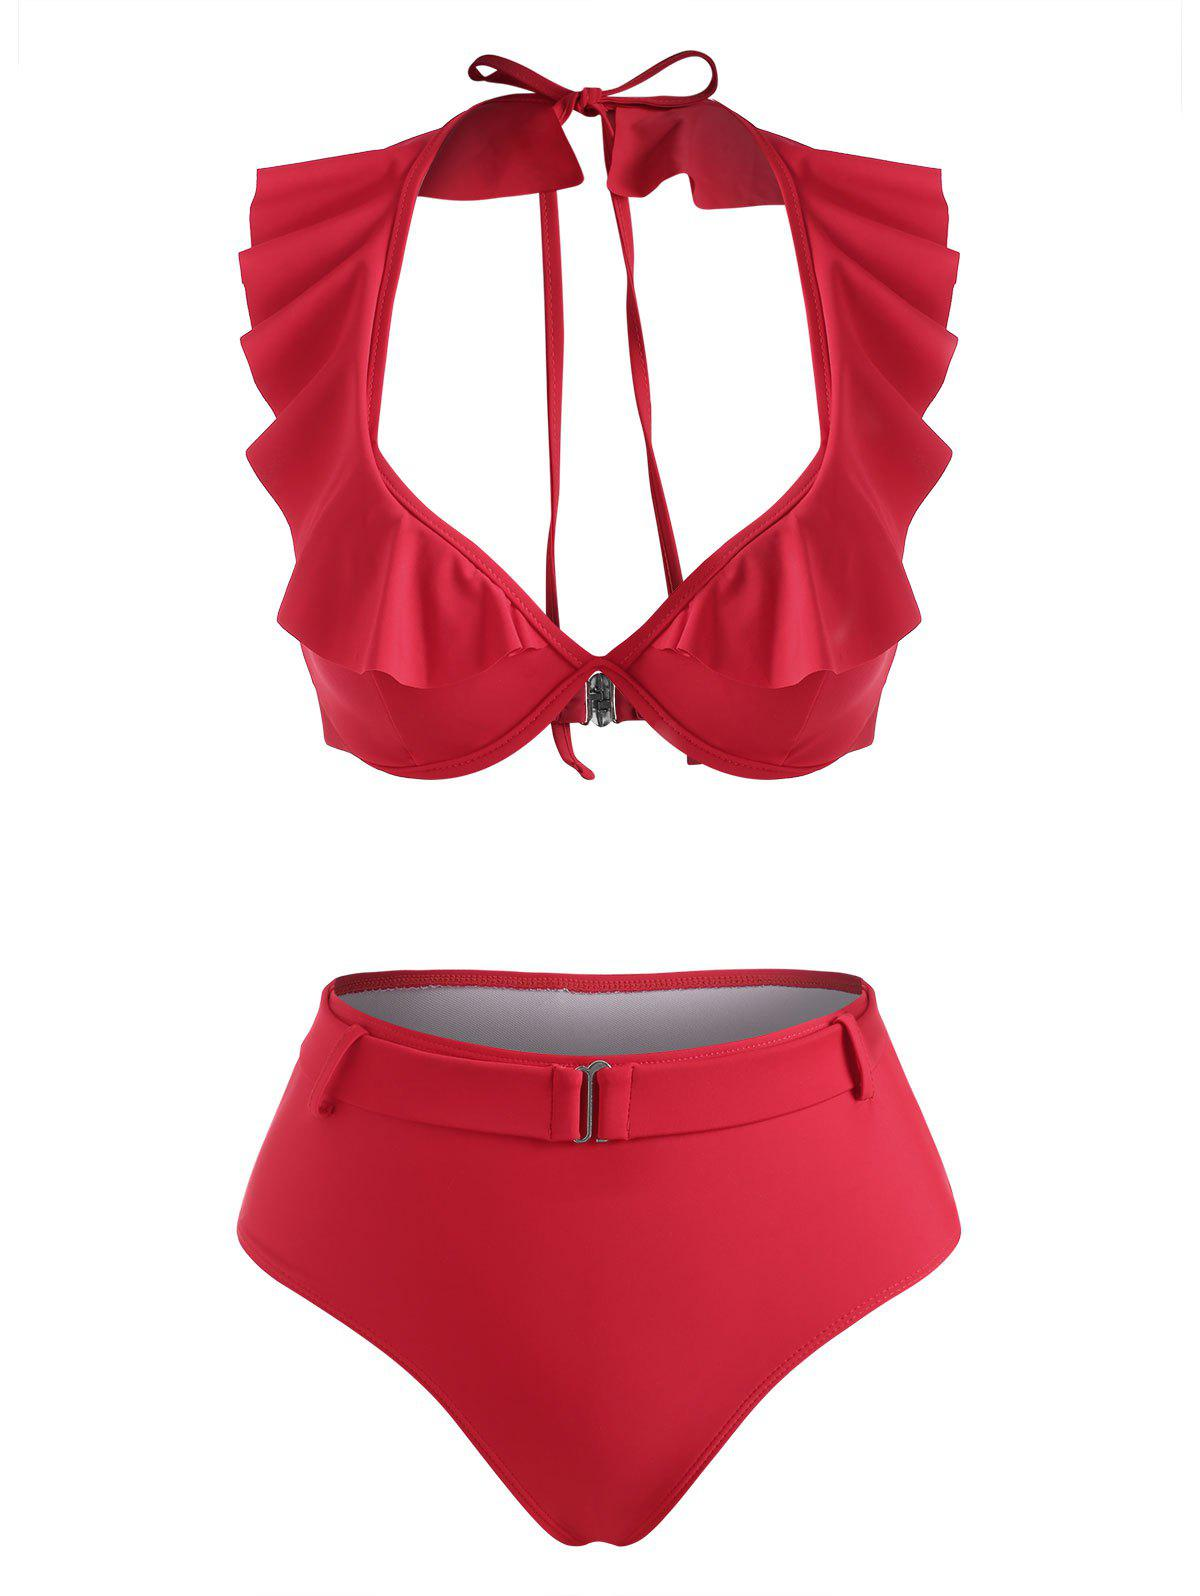 Hot Halter Ruffle Monowire Belted High Waisted Bikini Swimwear